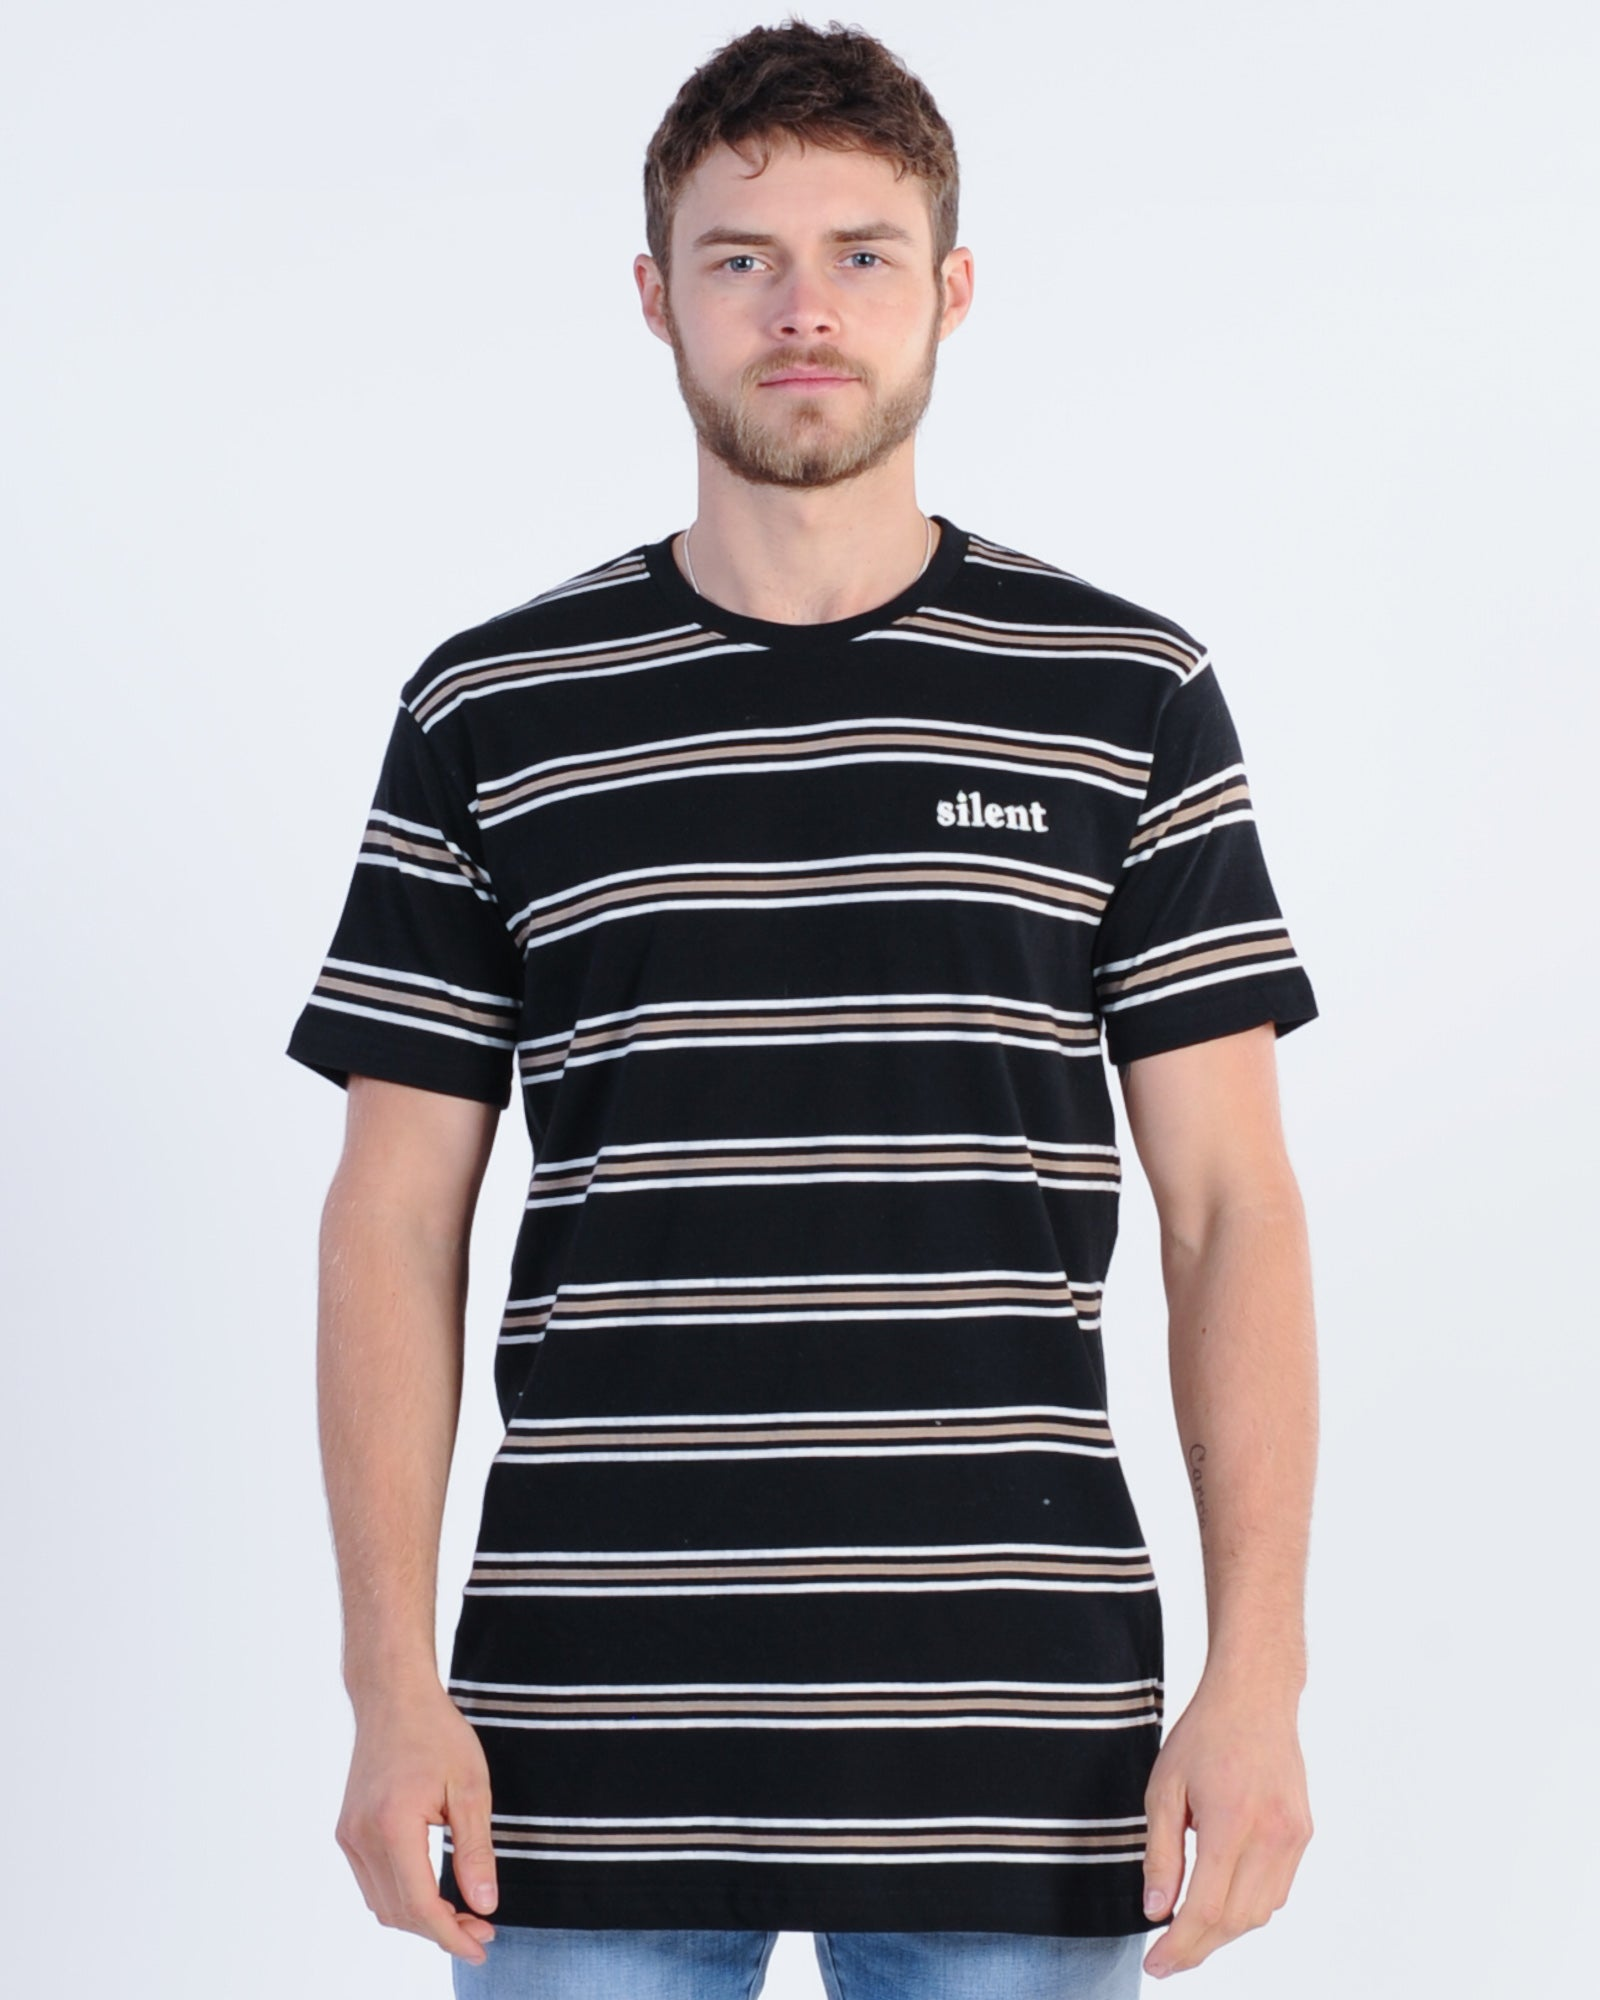 618e3ea439 Silent Theory Exit Stripe Tee - Black – New Generation Clothing